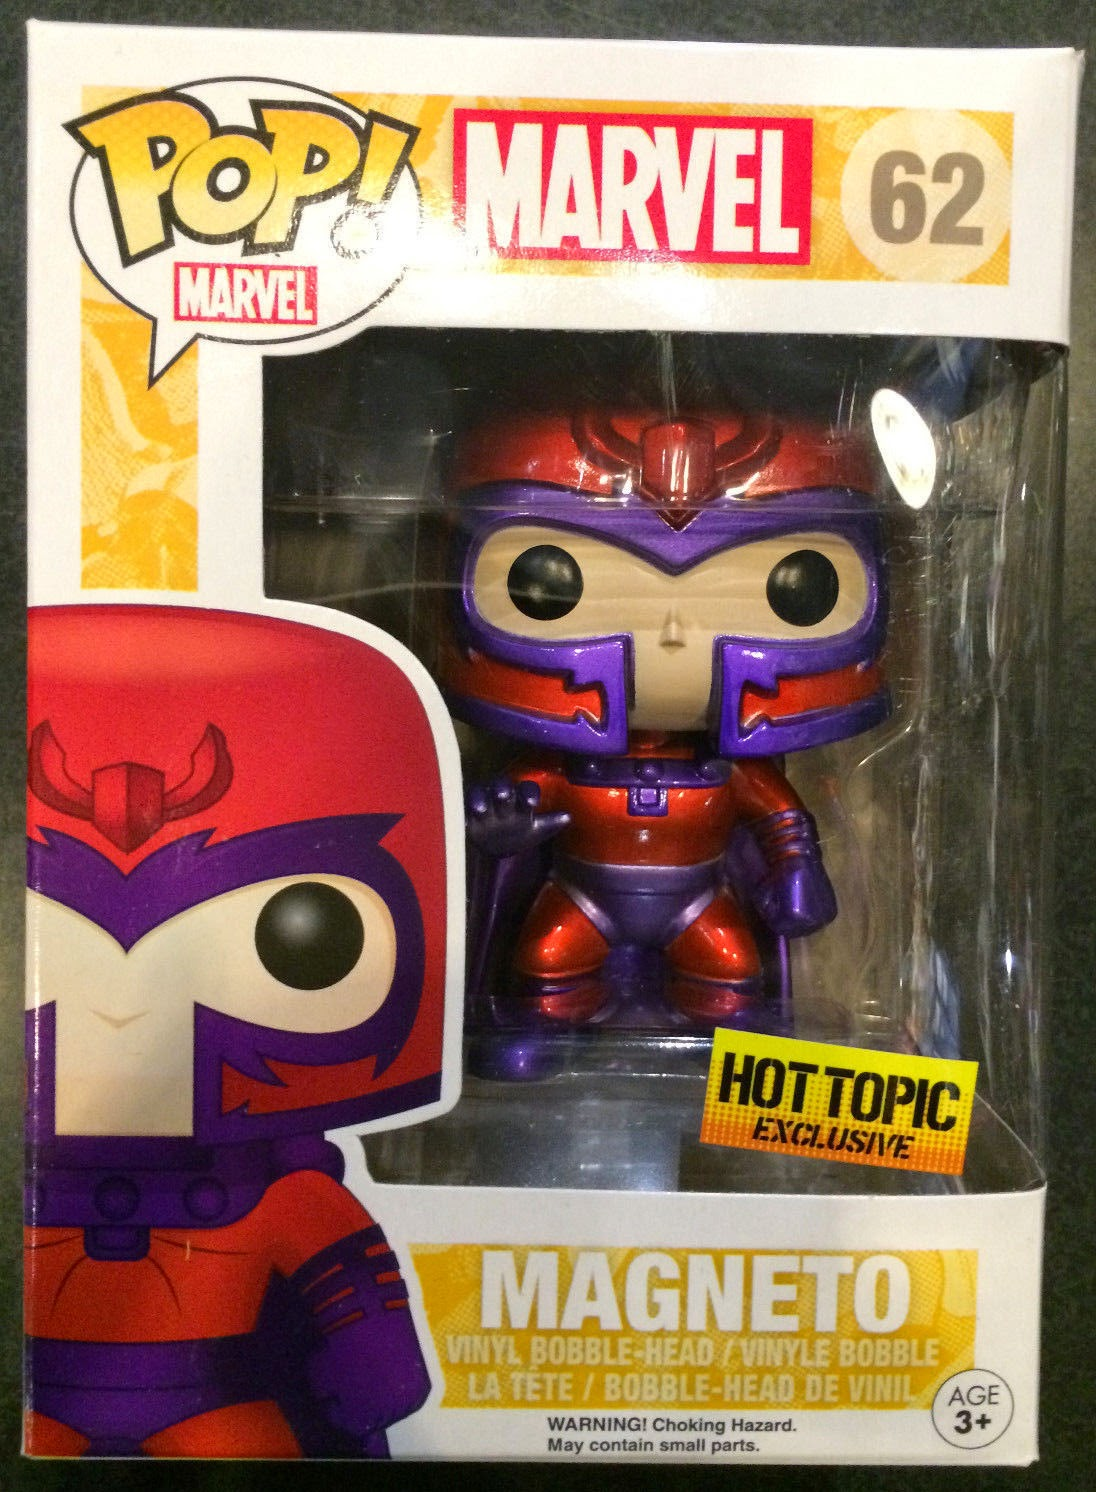 Magneto Edición Metálica exclusiva Hot Topic